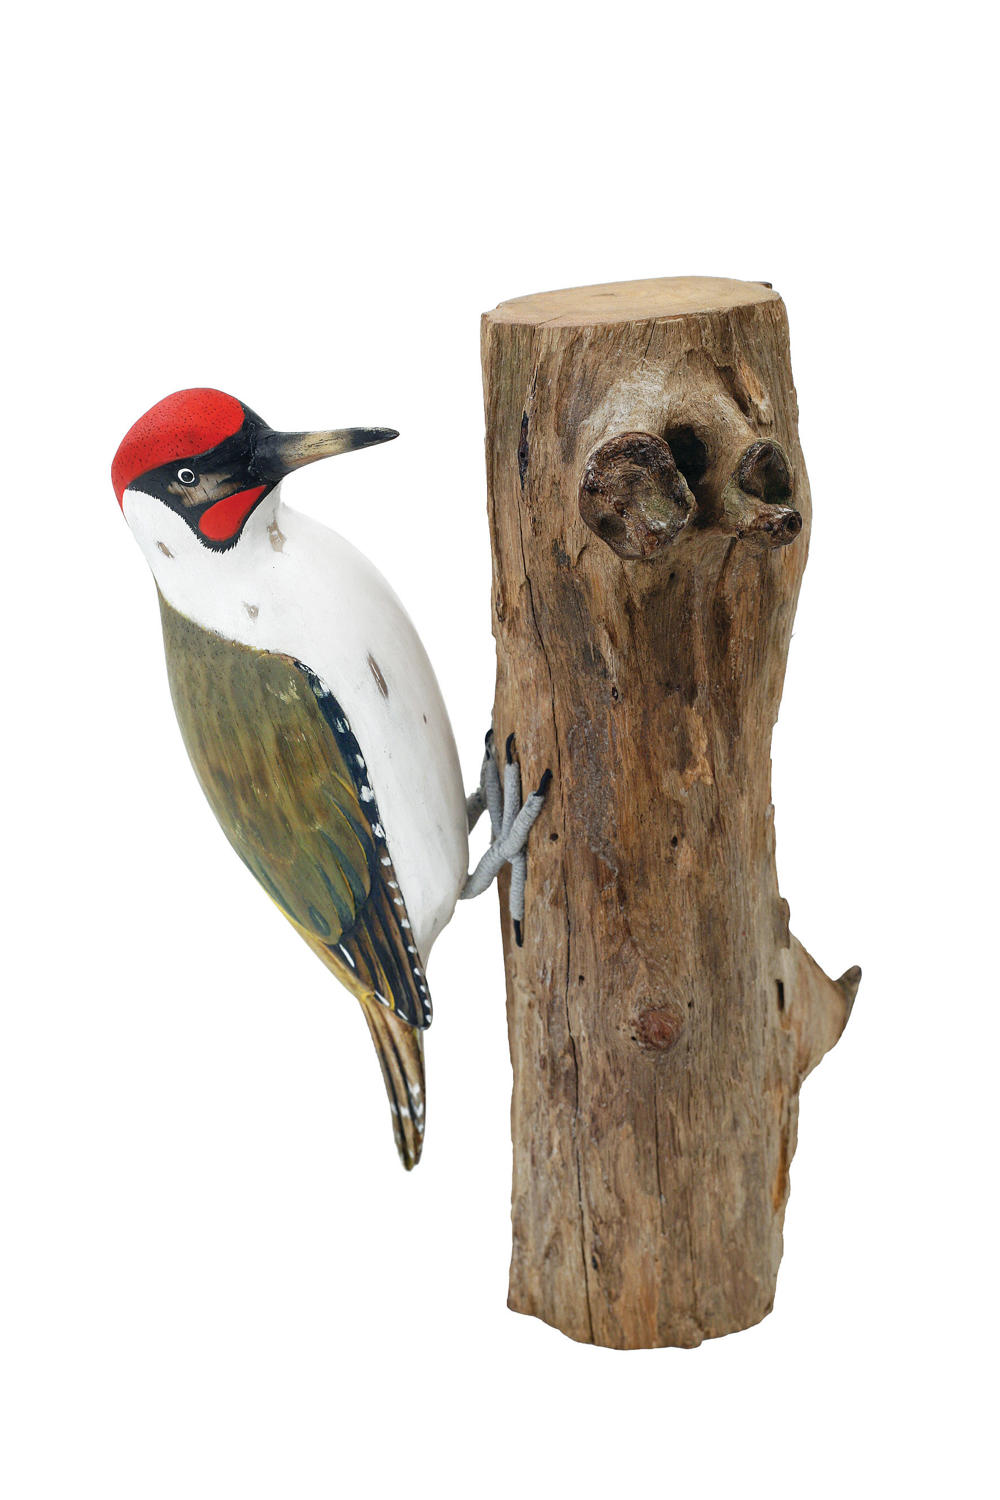 Green Woodpecker - Hand carved and painted